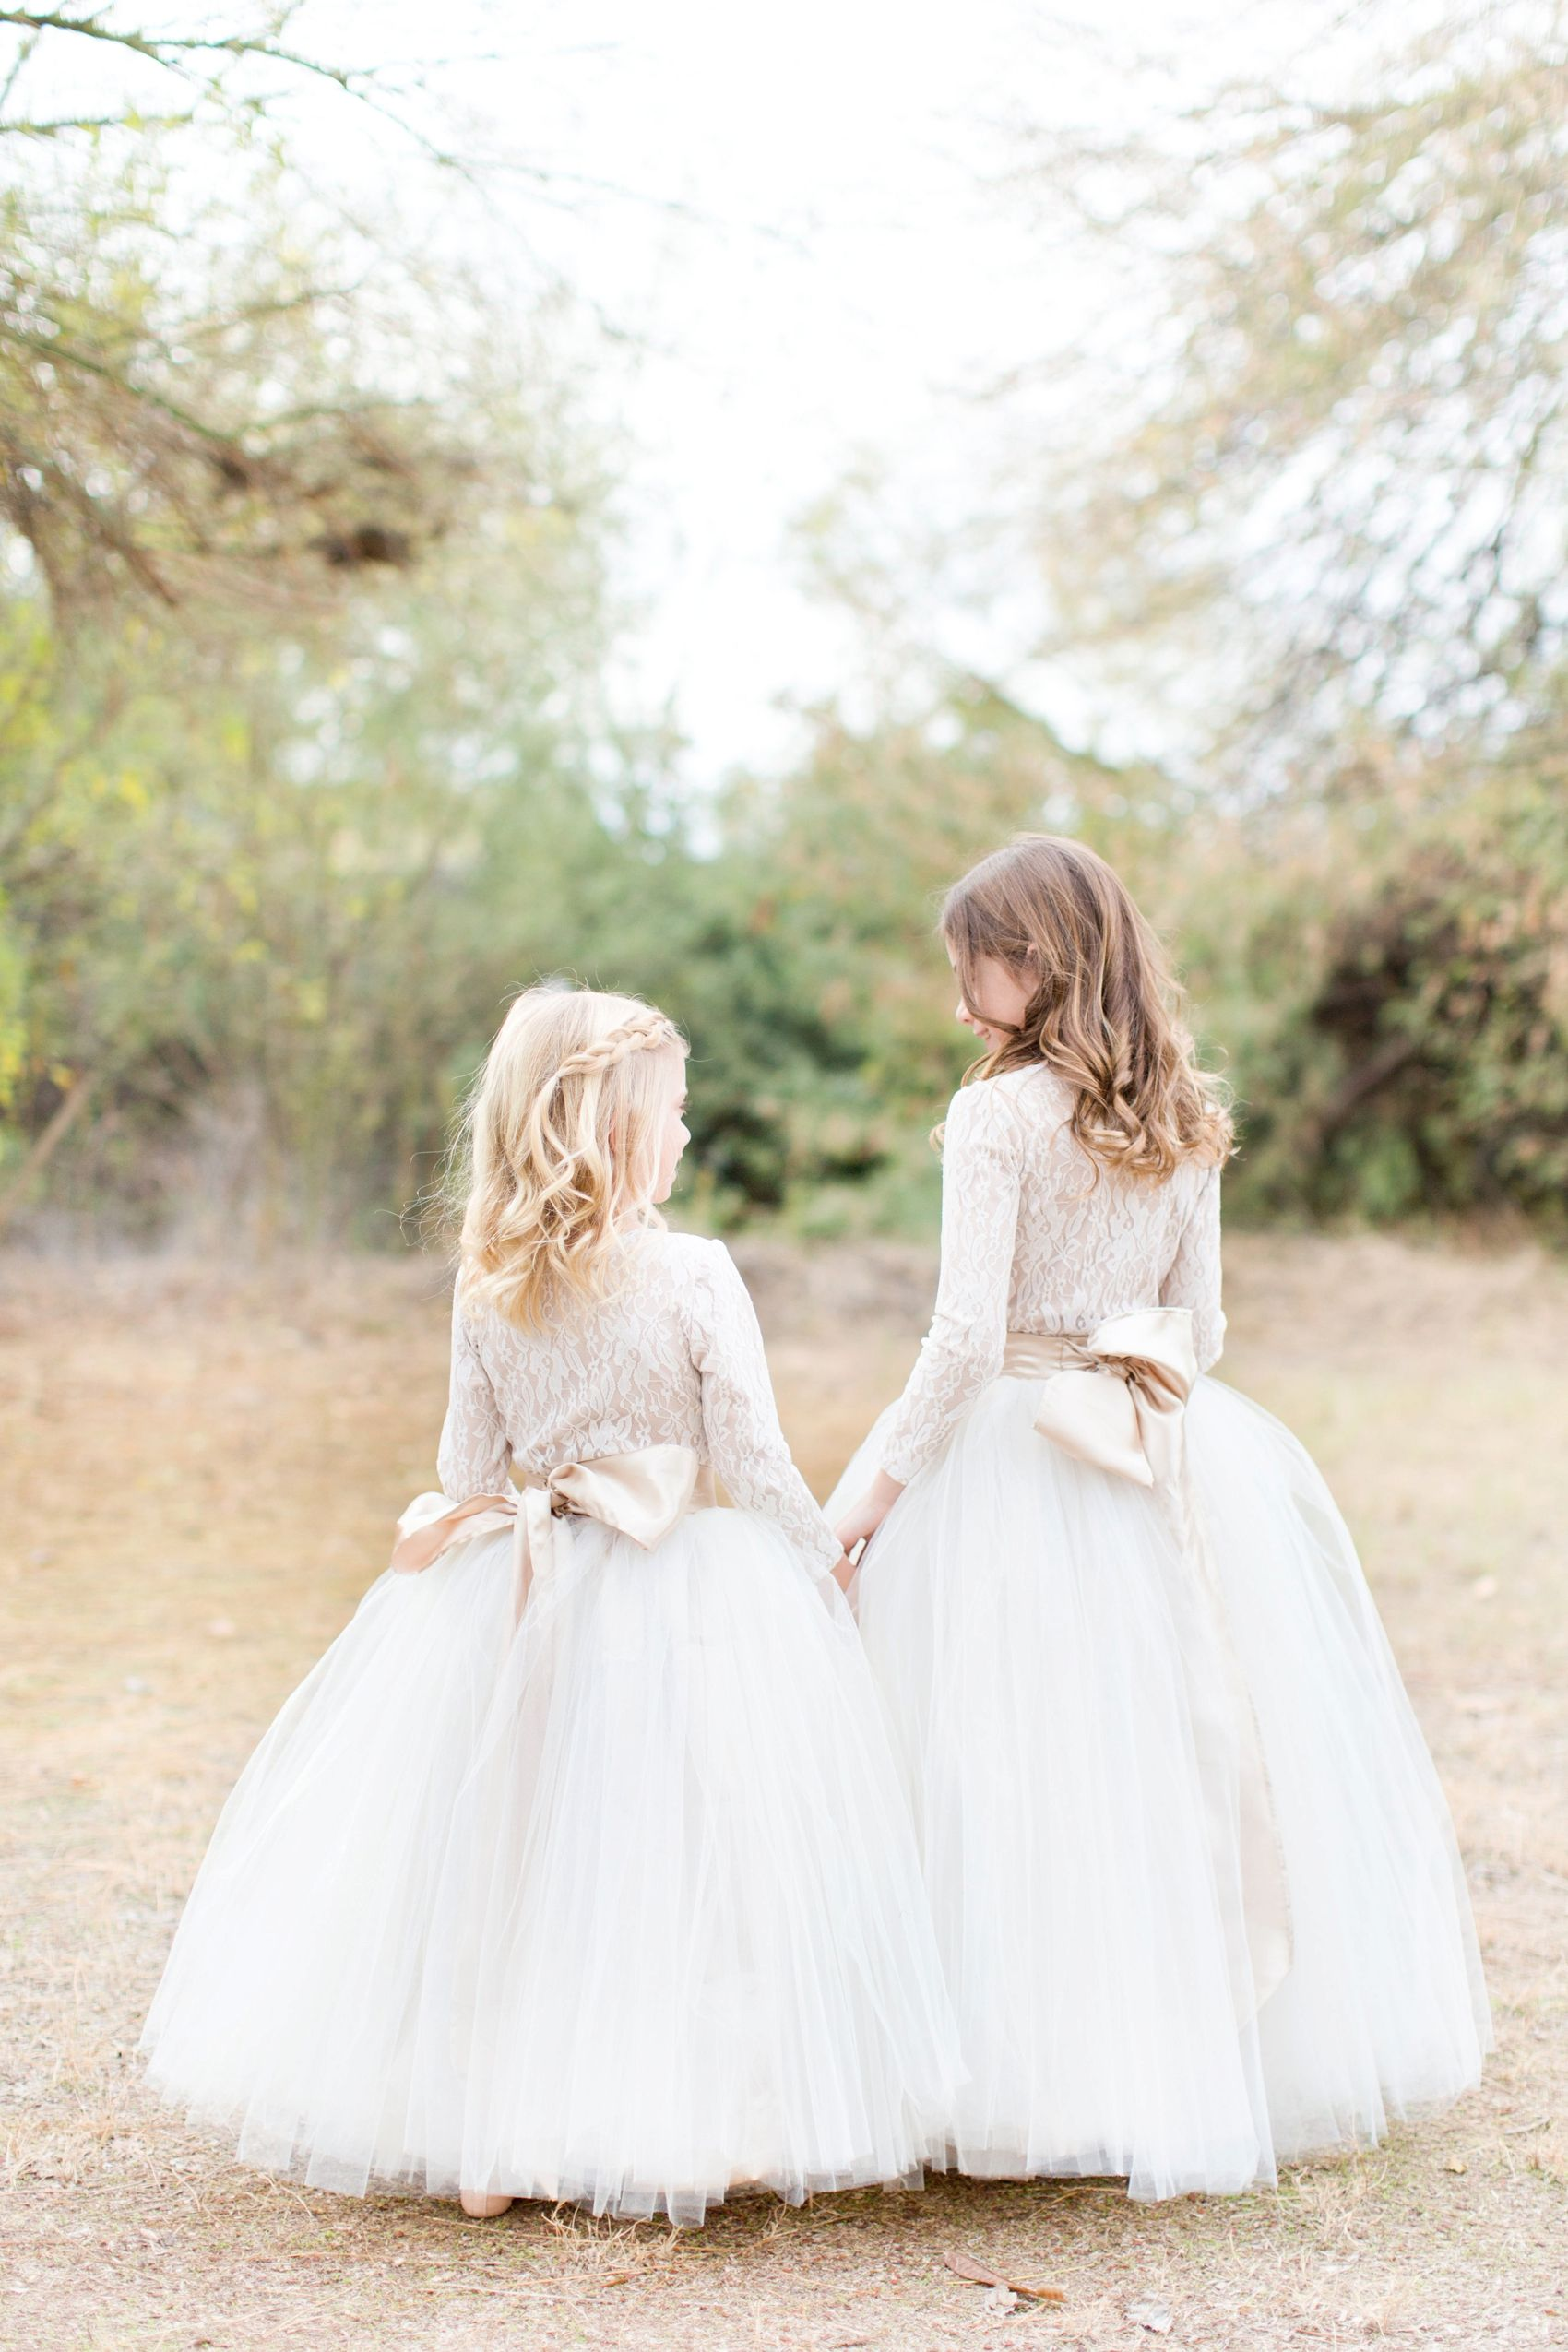 How to photograph kids at a wedding or portrait session flower